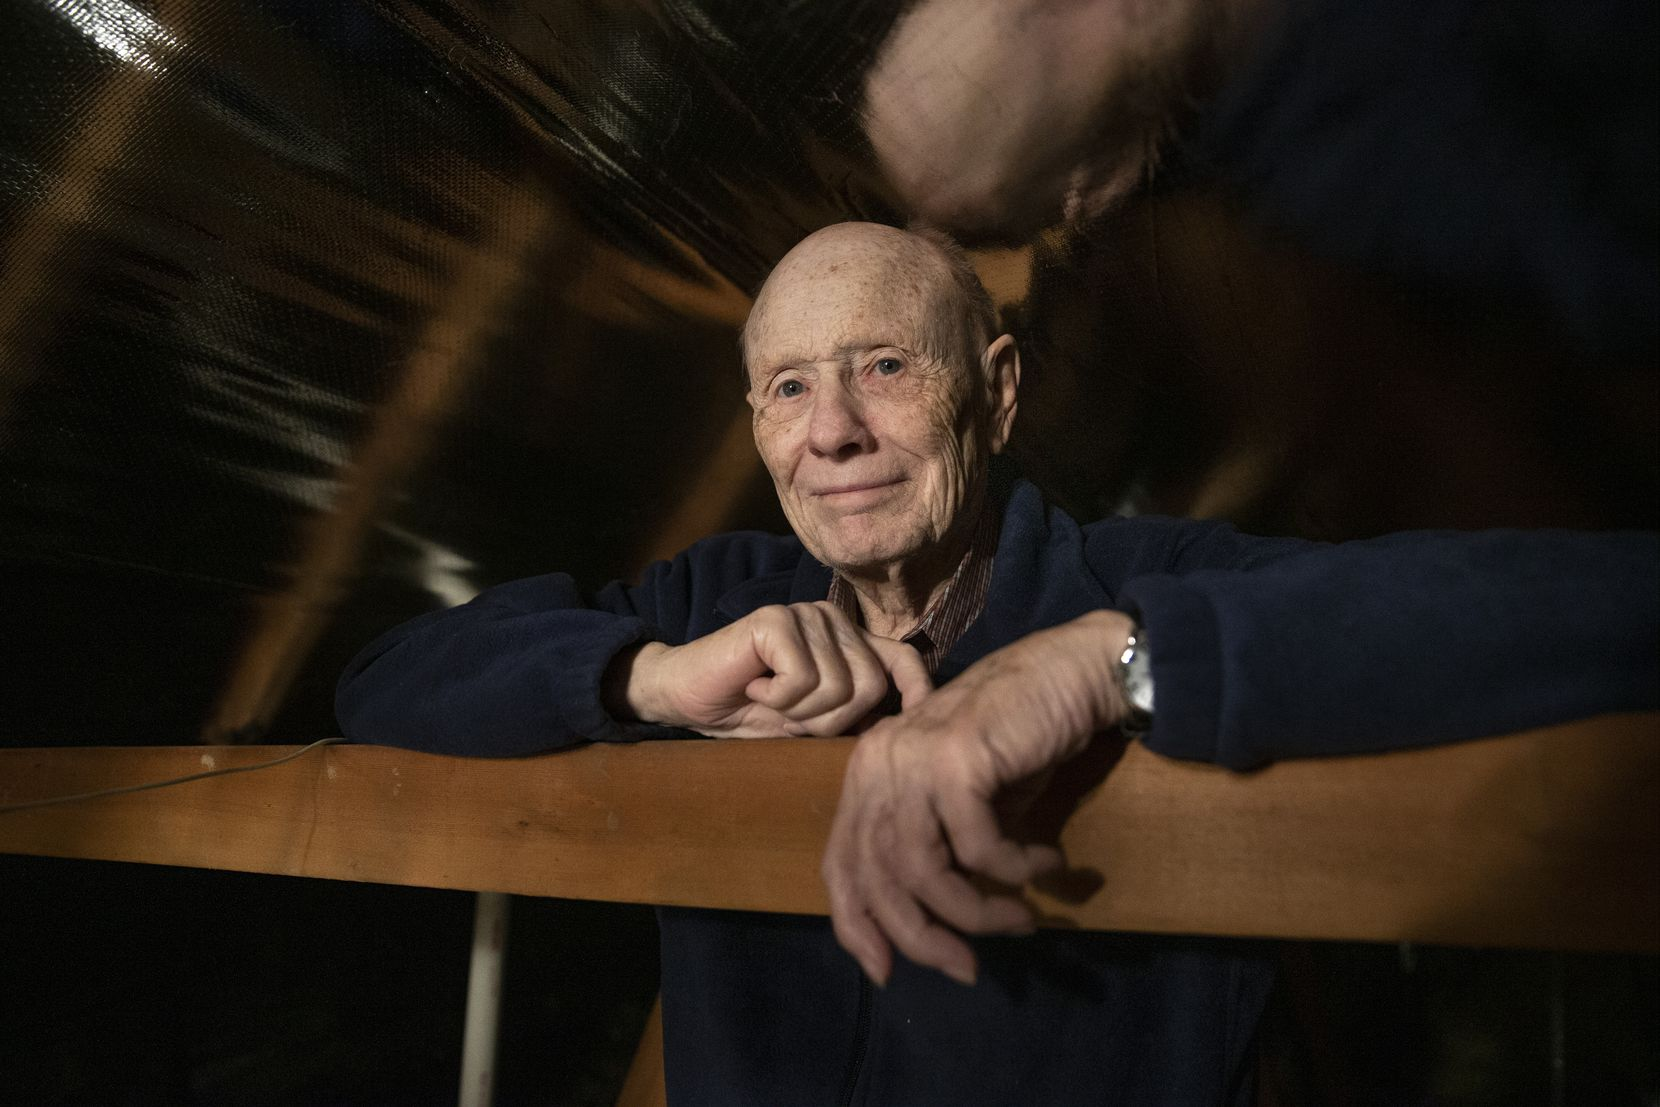 Alan Oldfield, 84, in the attic of his Bedford home. Oldfield said he was taken advantage of by Abe Issa's solar energy company into taking out a loan to pay for a weatherization project on Oldfield's home.